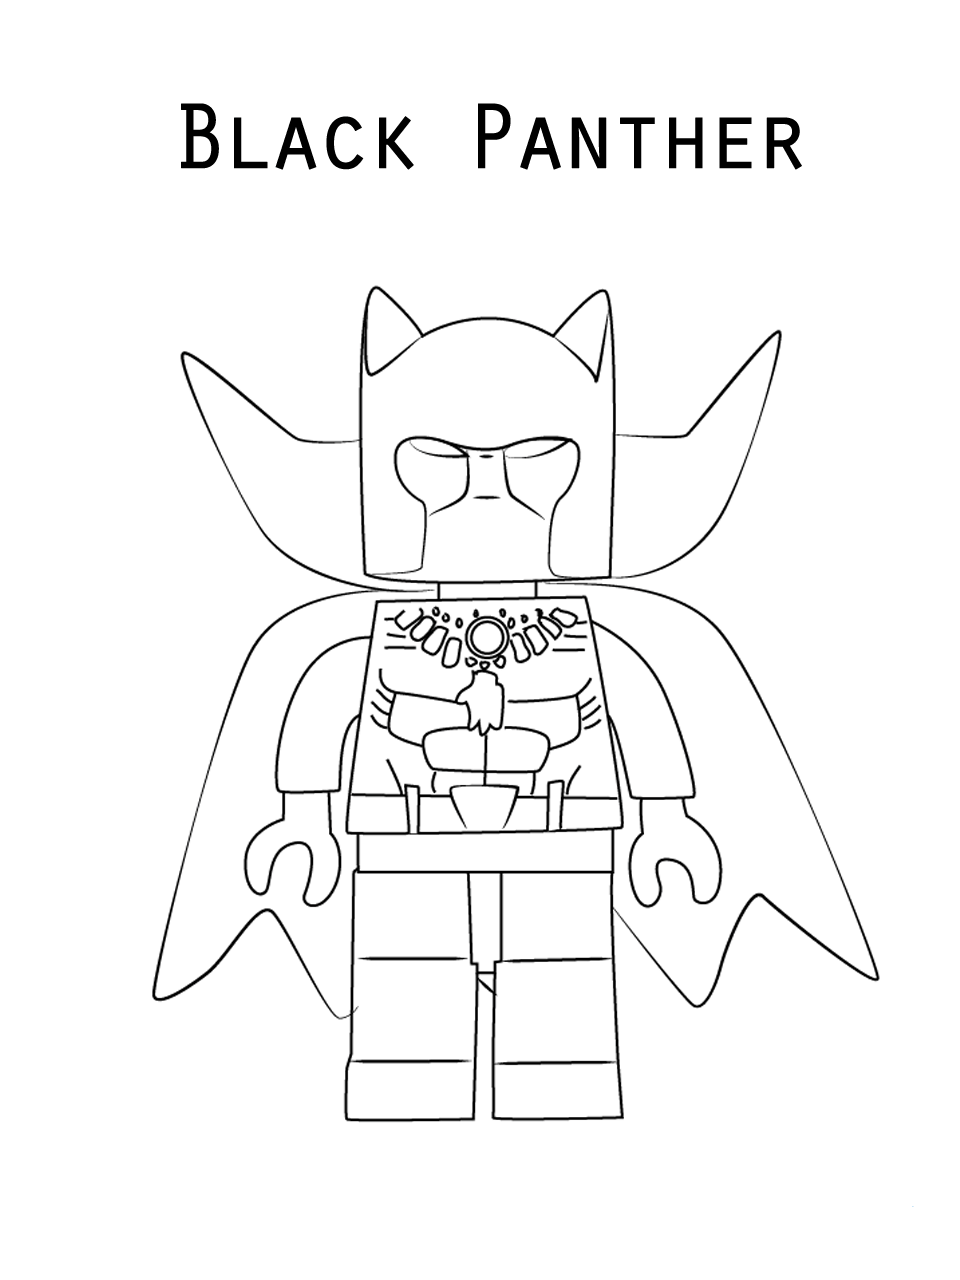 Black Panther Coloring Pages